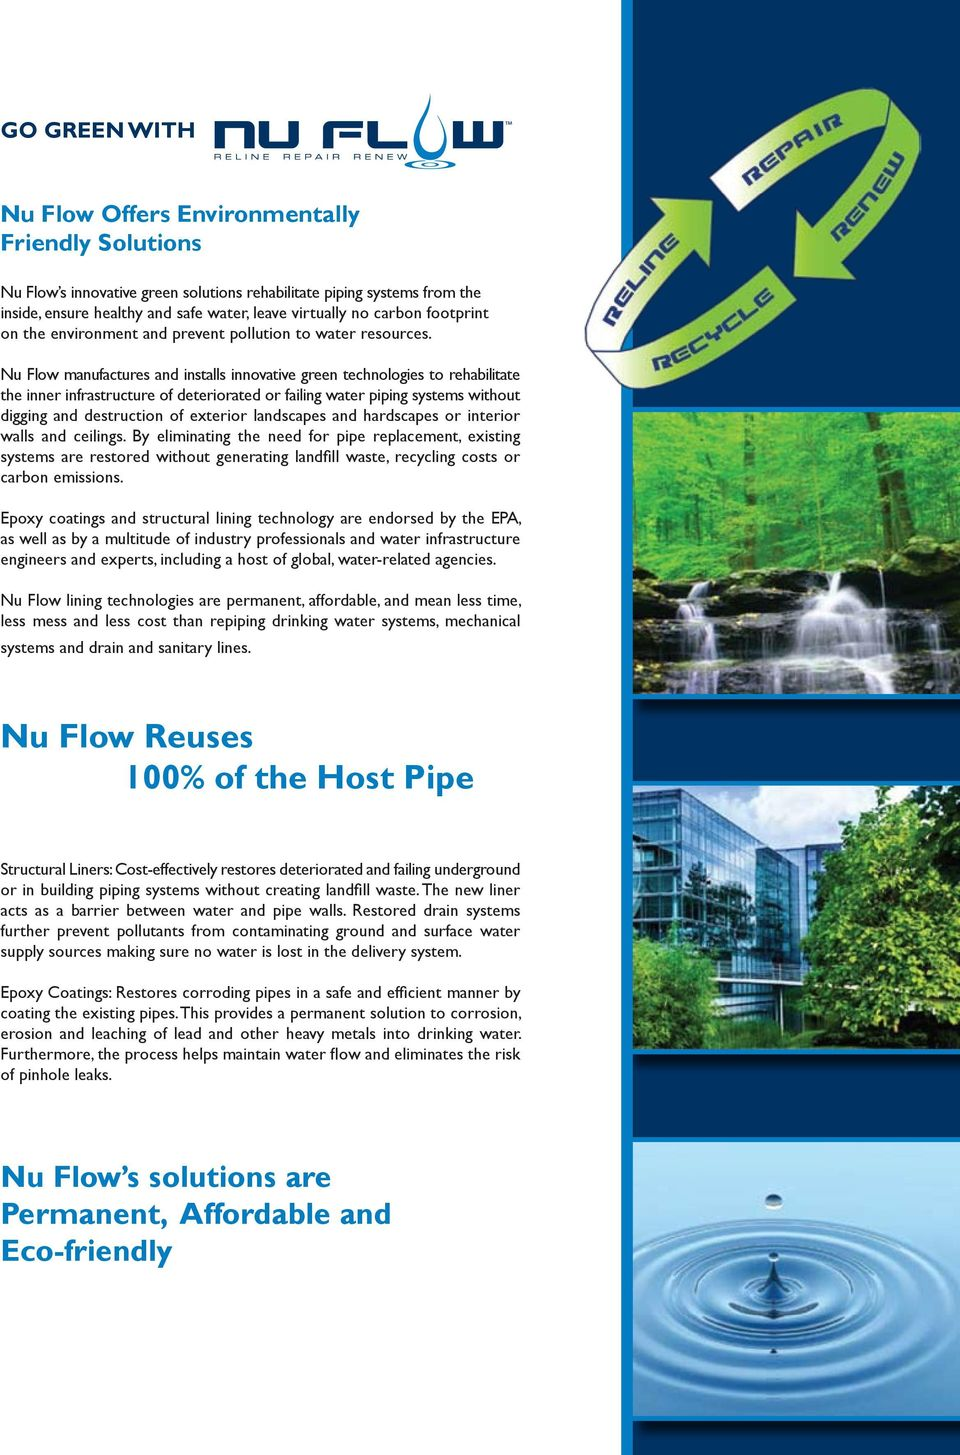 Nu Flow manufactures and installs innovative green technologies to rehabilitate the inner infrastructure of deteriorated or failing water piping systems without digging and destruction of exterior